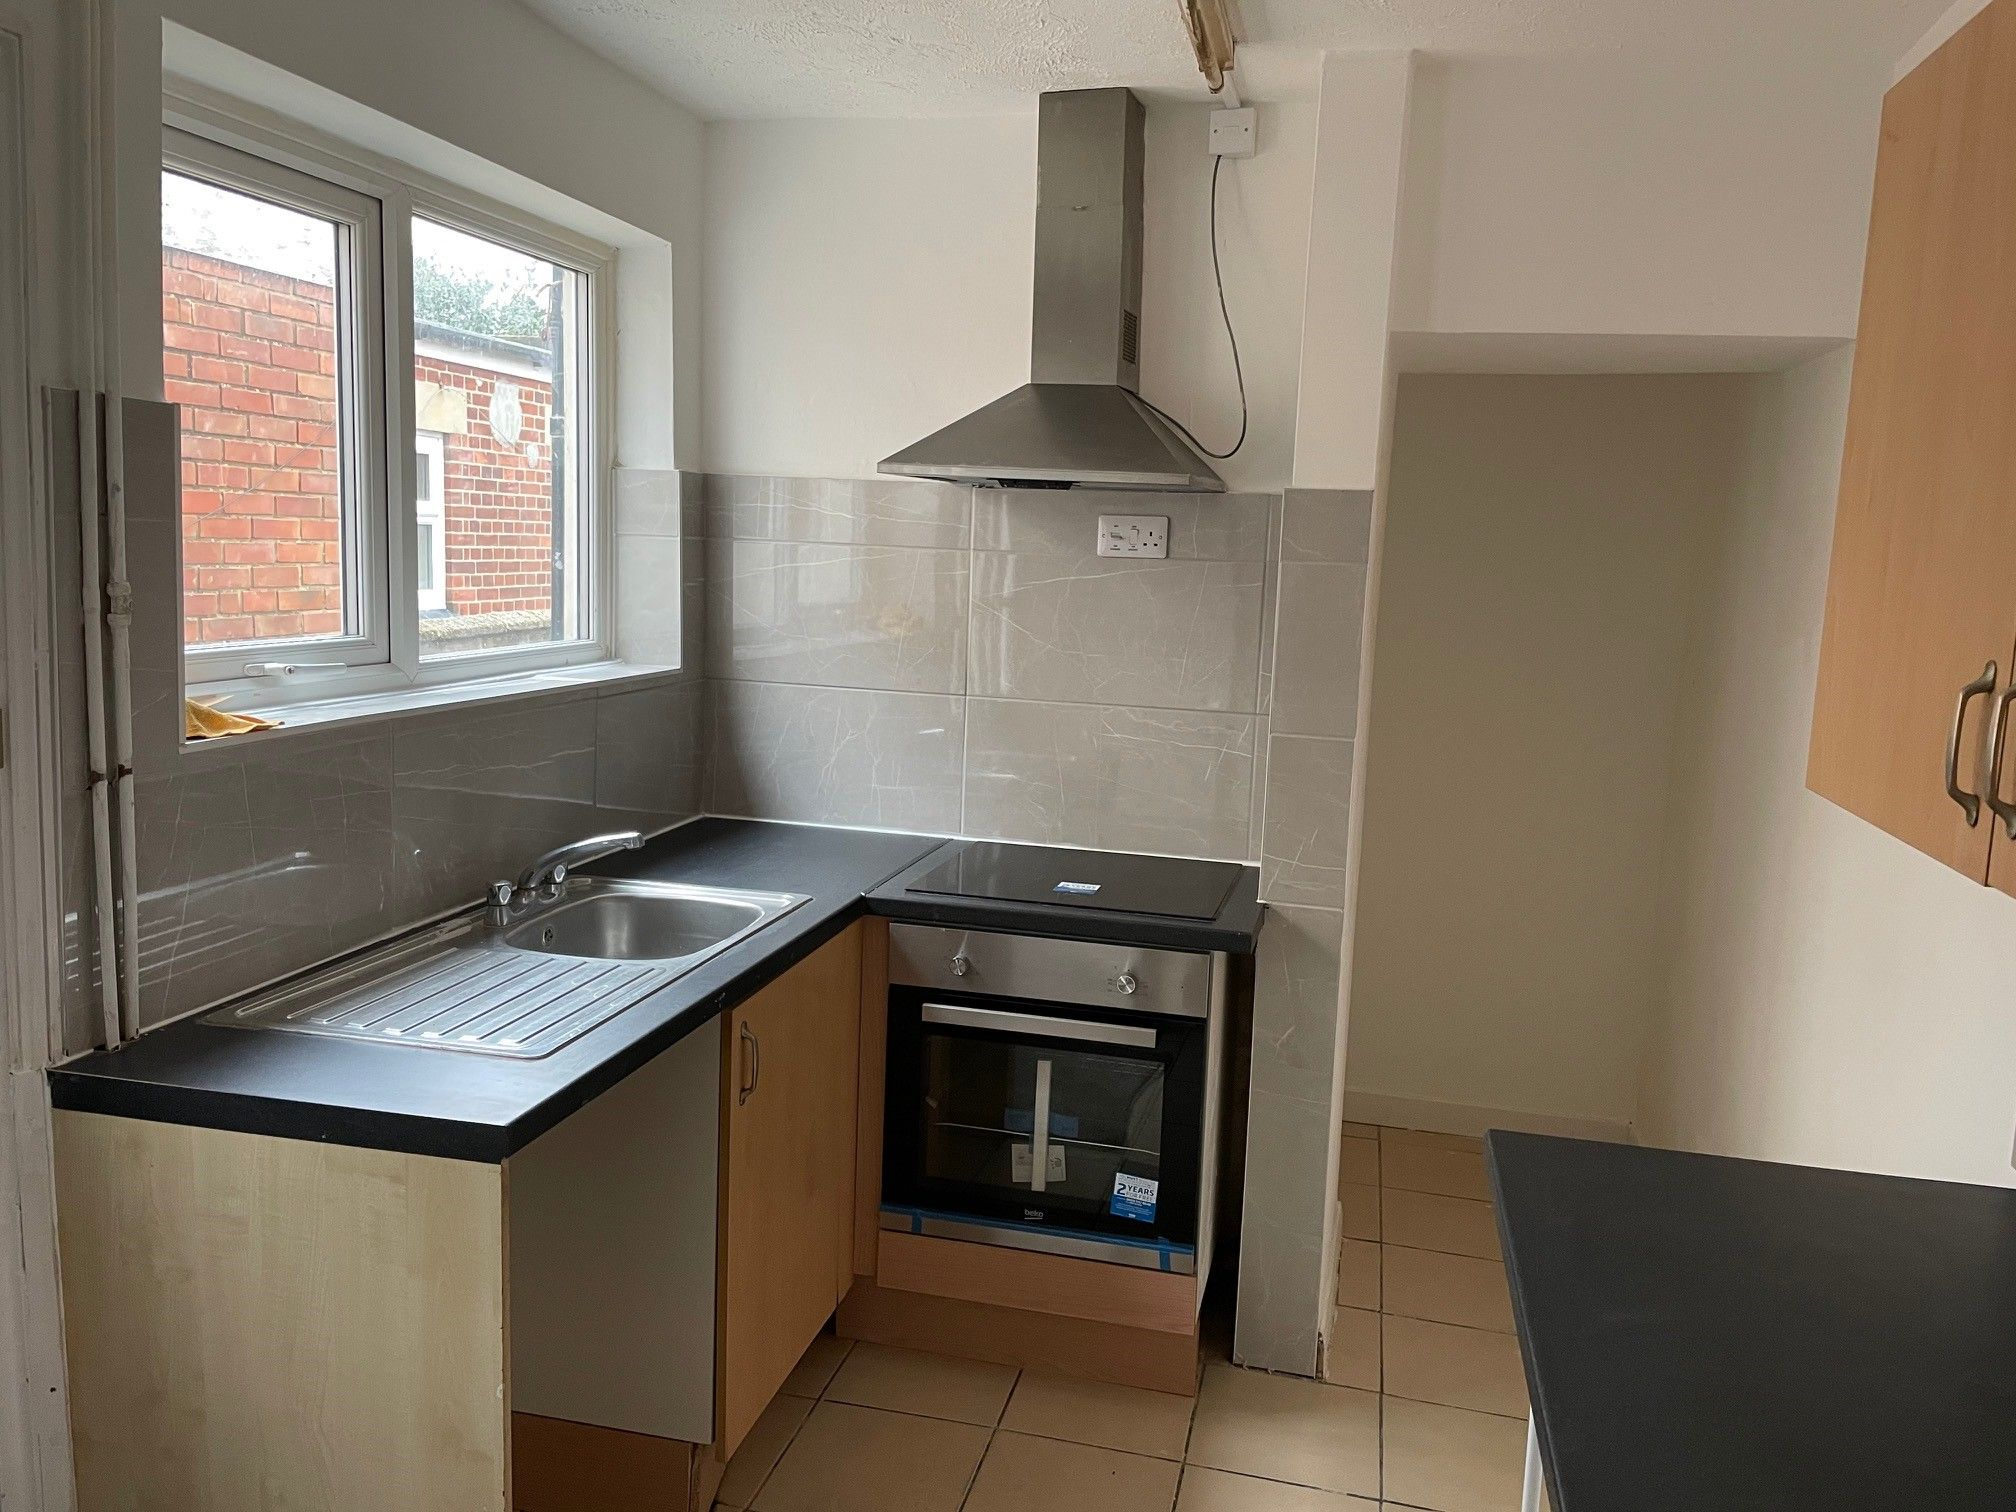 1 bedroom flat flat/apartment To Let in Ipswich - Kitchen